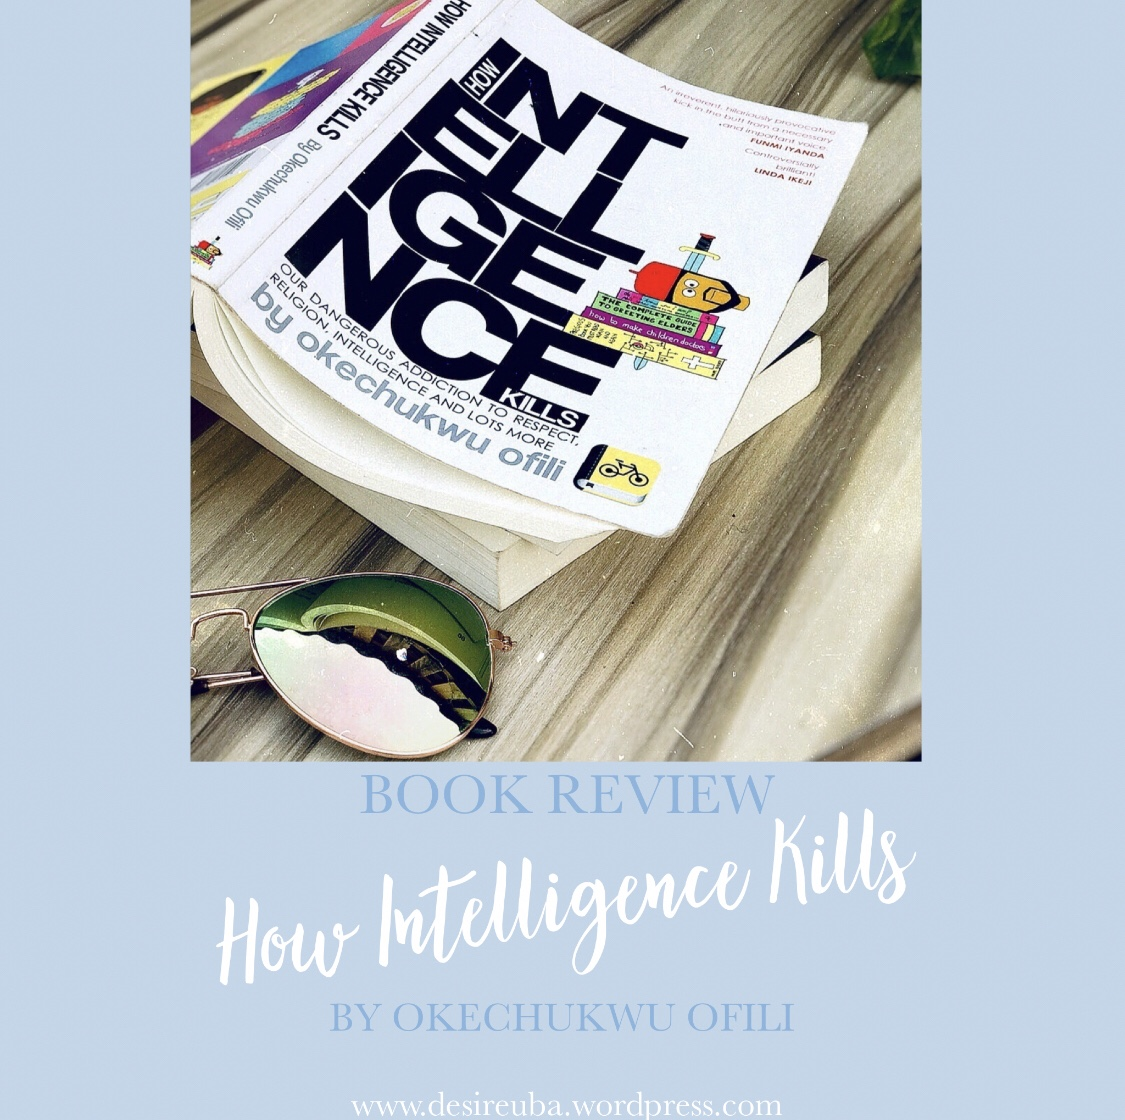 Book Review || 4 Things All Nigerians Need To Admit Today From How Intelligence Kills by Okechukwu Ofili